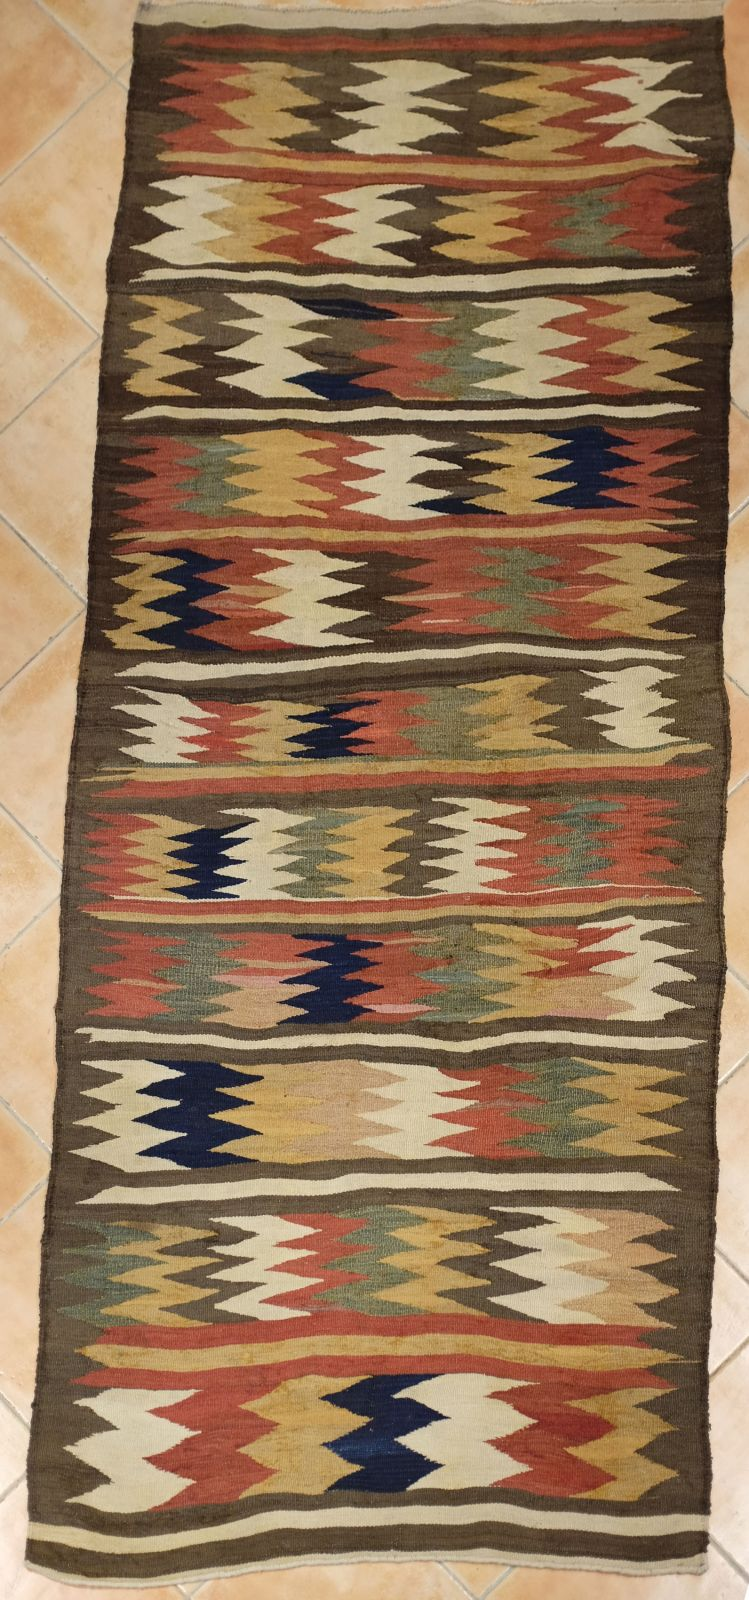 valeur et prix d un vieux tapis ou tapis ancien kilim ancien de la perse du nord vers 1890. Black Bedroom Furniture Sets. Home Design Ideas